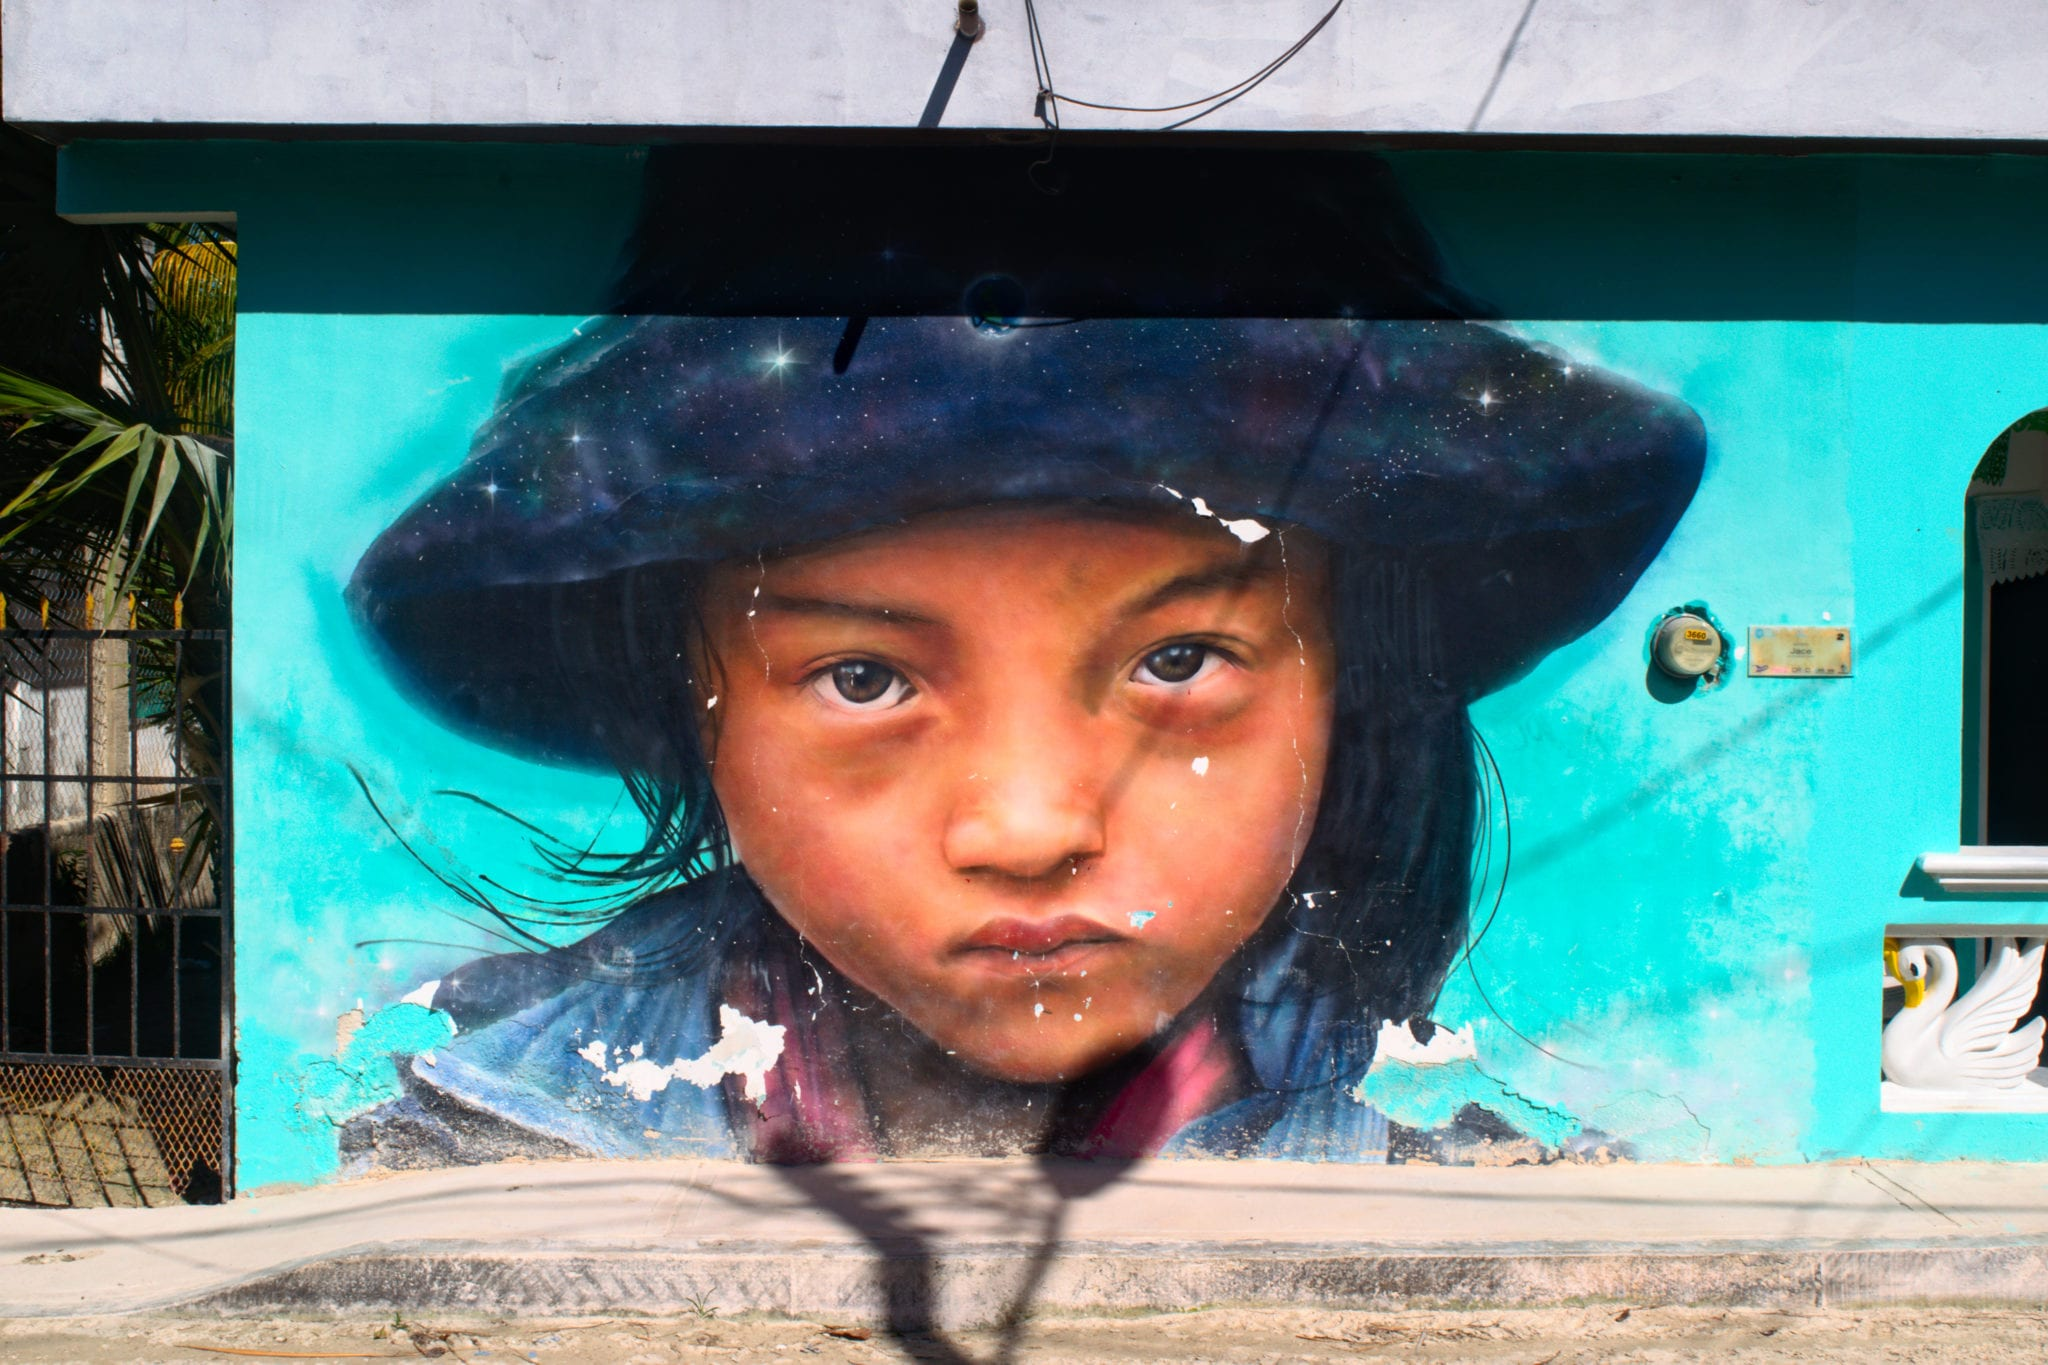 mural of a young girl on isla holbox, as seen while backpacking mexico americans